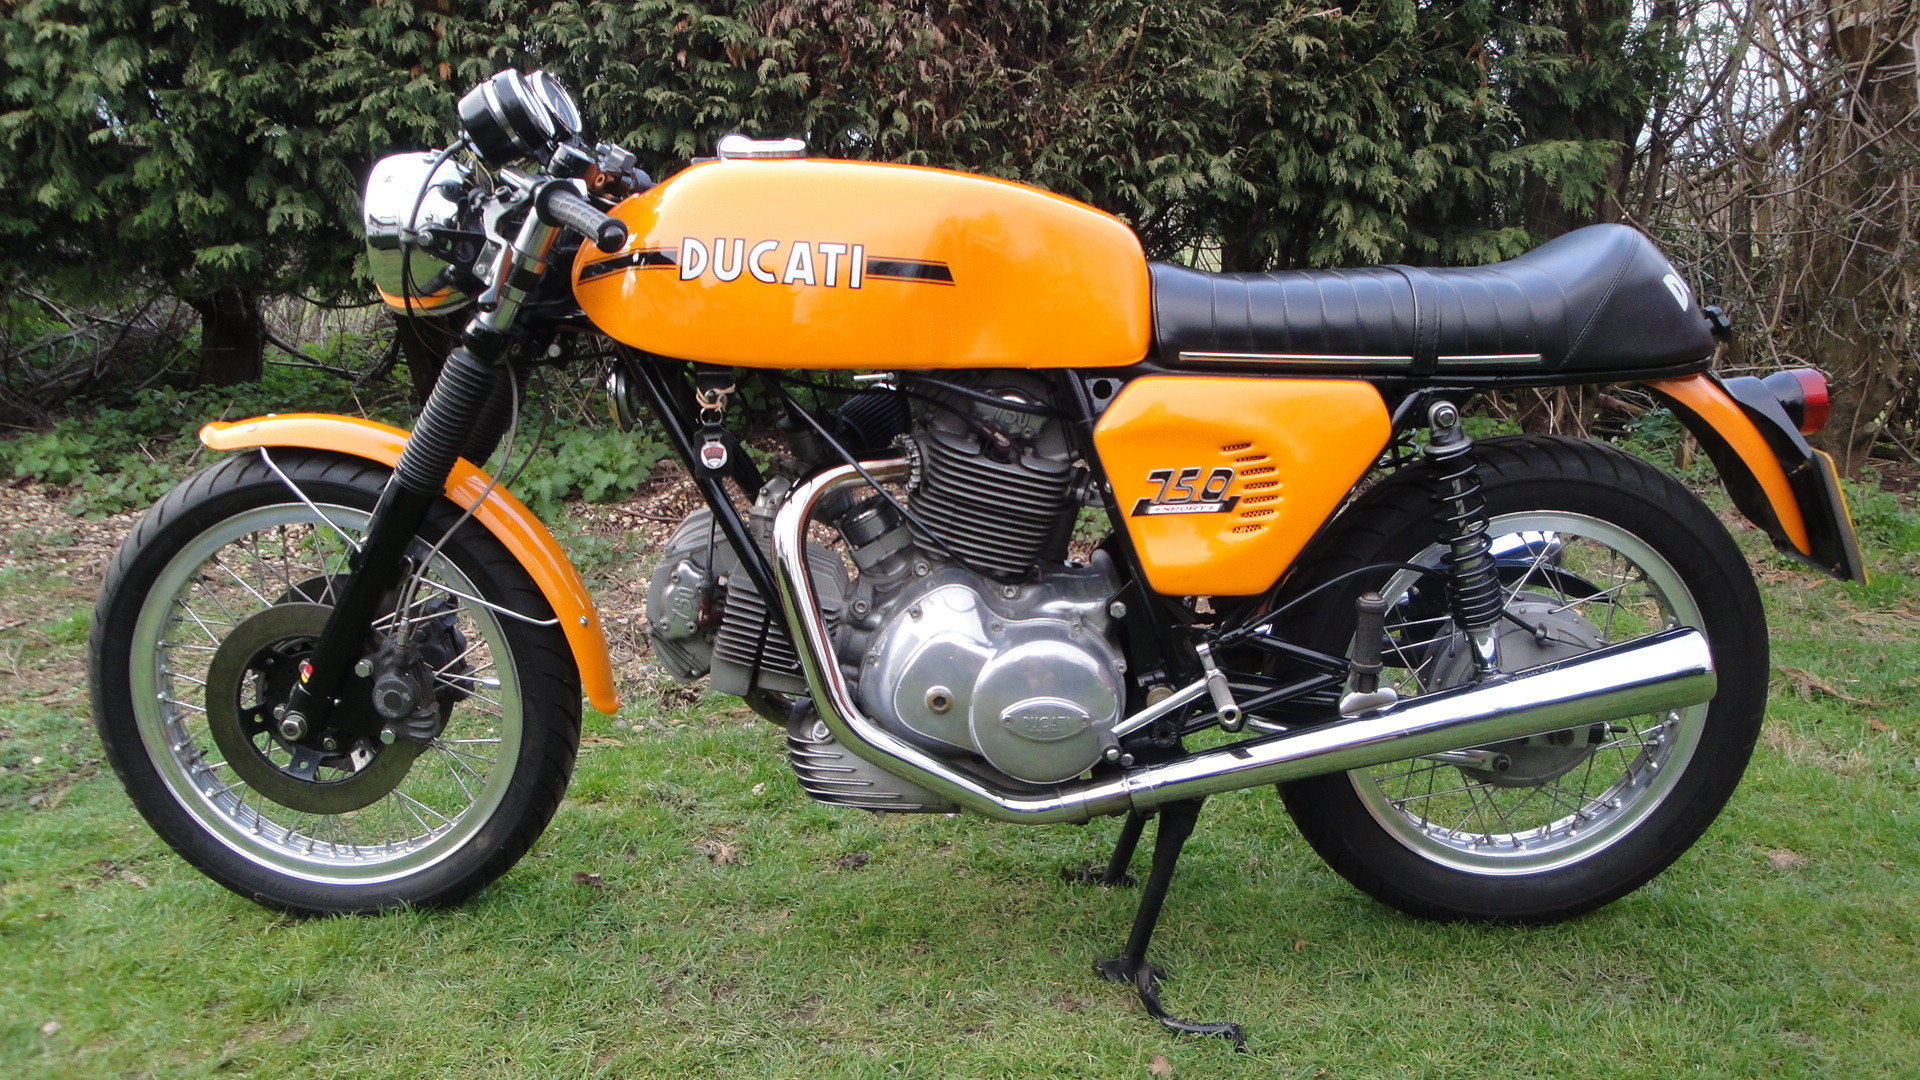 DUCATI 750 SPORT 1975 UK SUPPLIED. 1 PREV. OWNER. For Sale (picture 2 of 6)